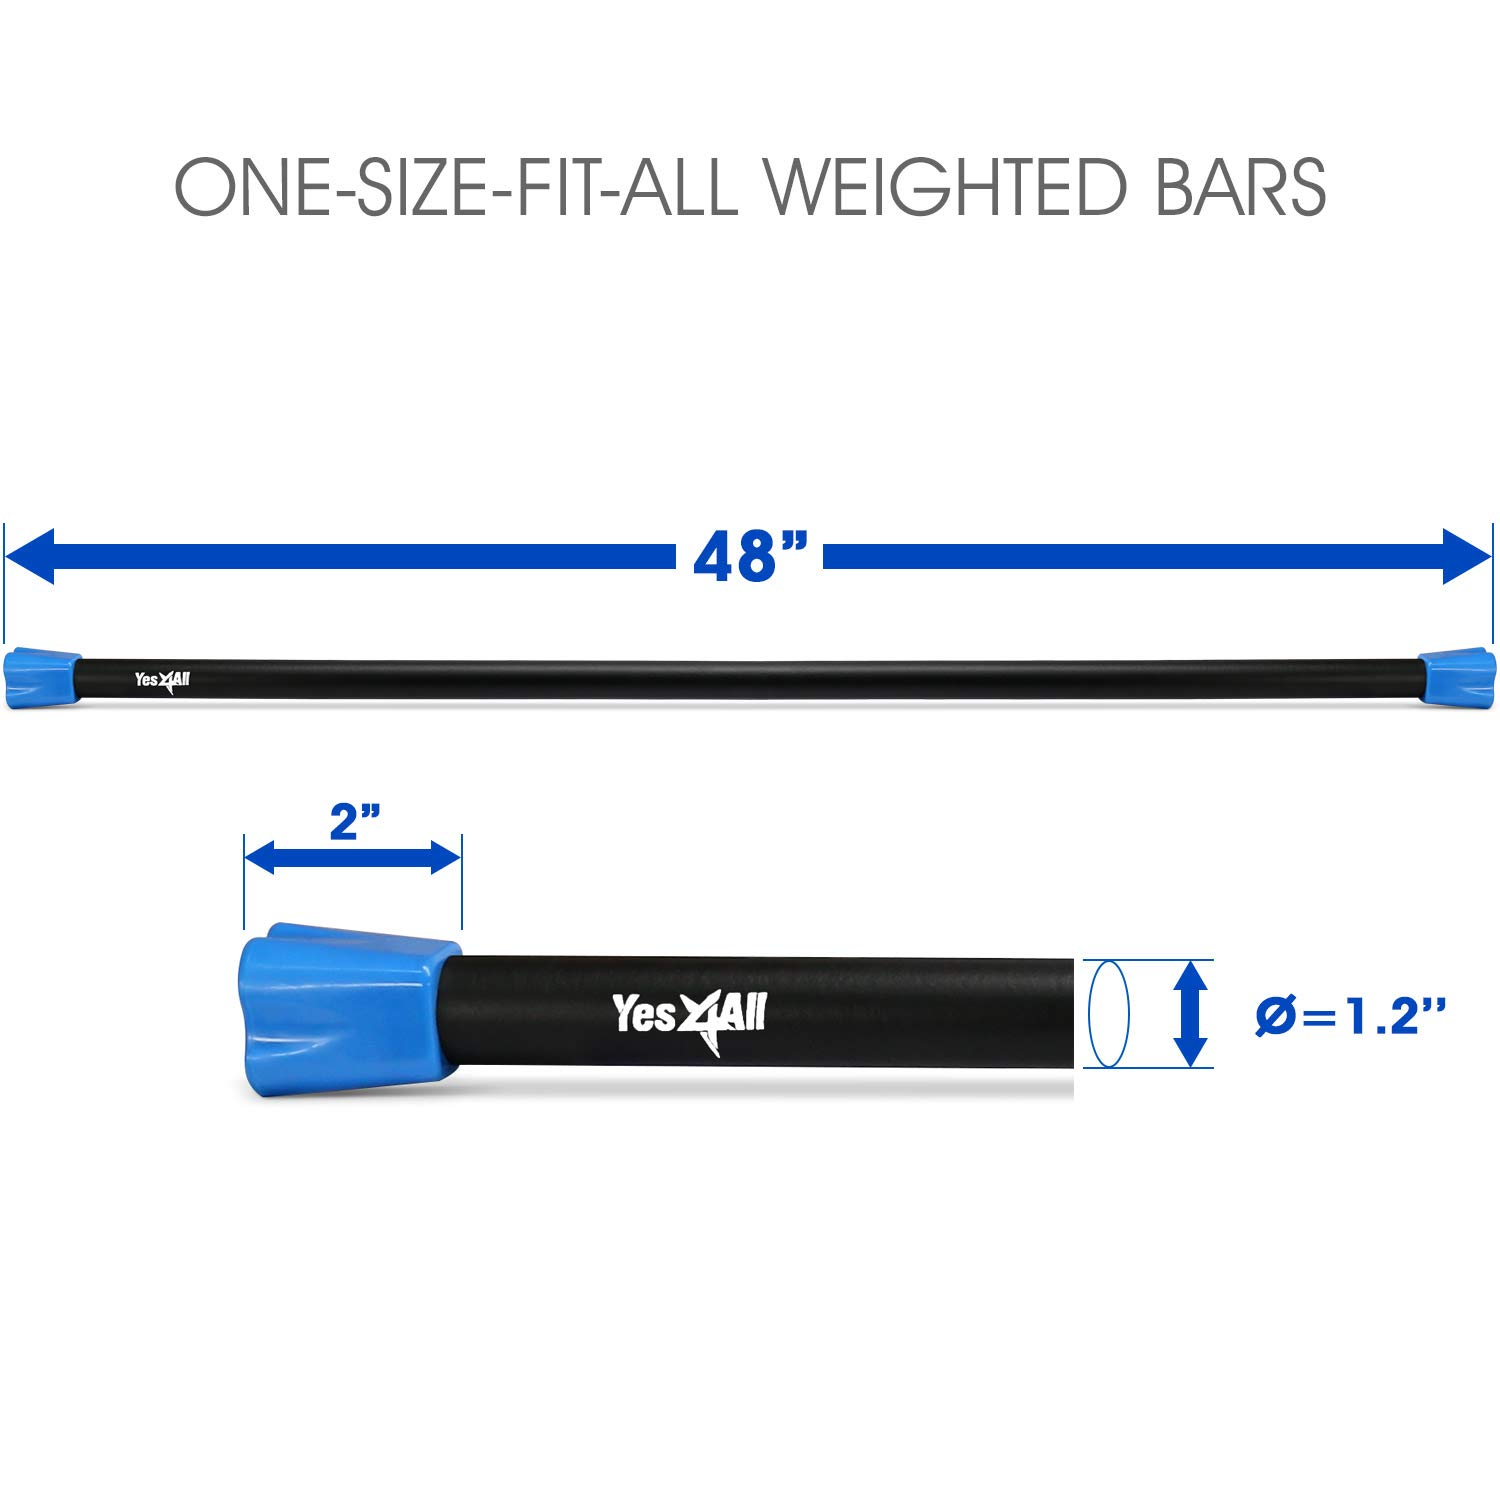 Yes4All Total Body Workout Weighted Bar / Weighted Workout Bar – Great for Physical Therapy, Aerobics and Yoga – Weighted Exercise Bar (5 lbs) by Yes4All (Image #3)